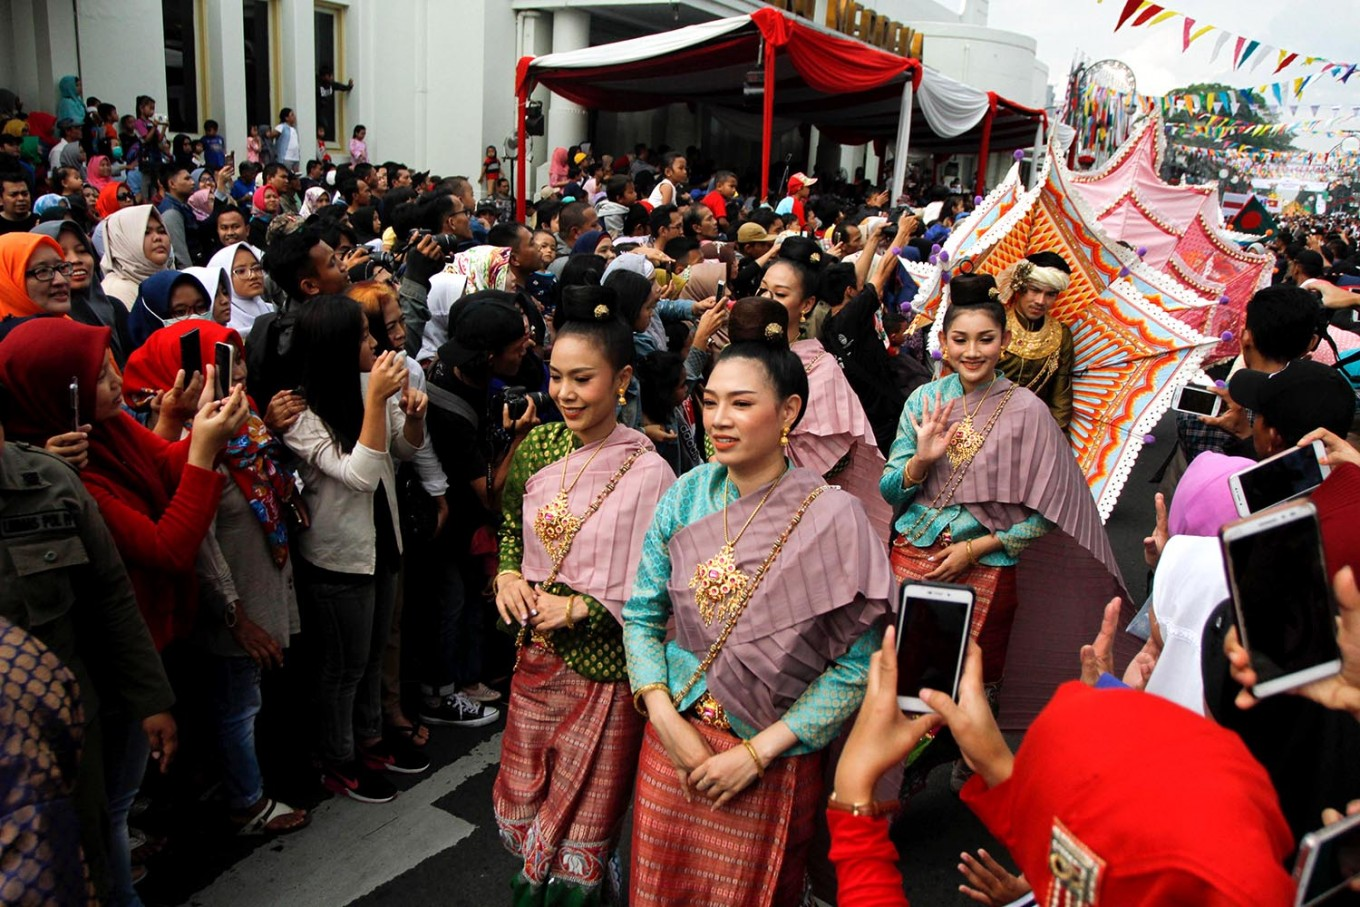 Onlookers flock to Jl. Asia Africa to watch the Thai delegation pass during the carnival. JP/Arya Dipa